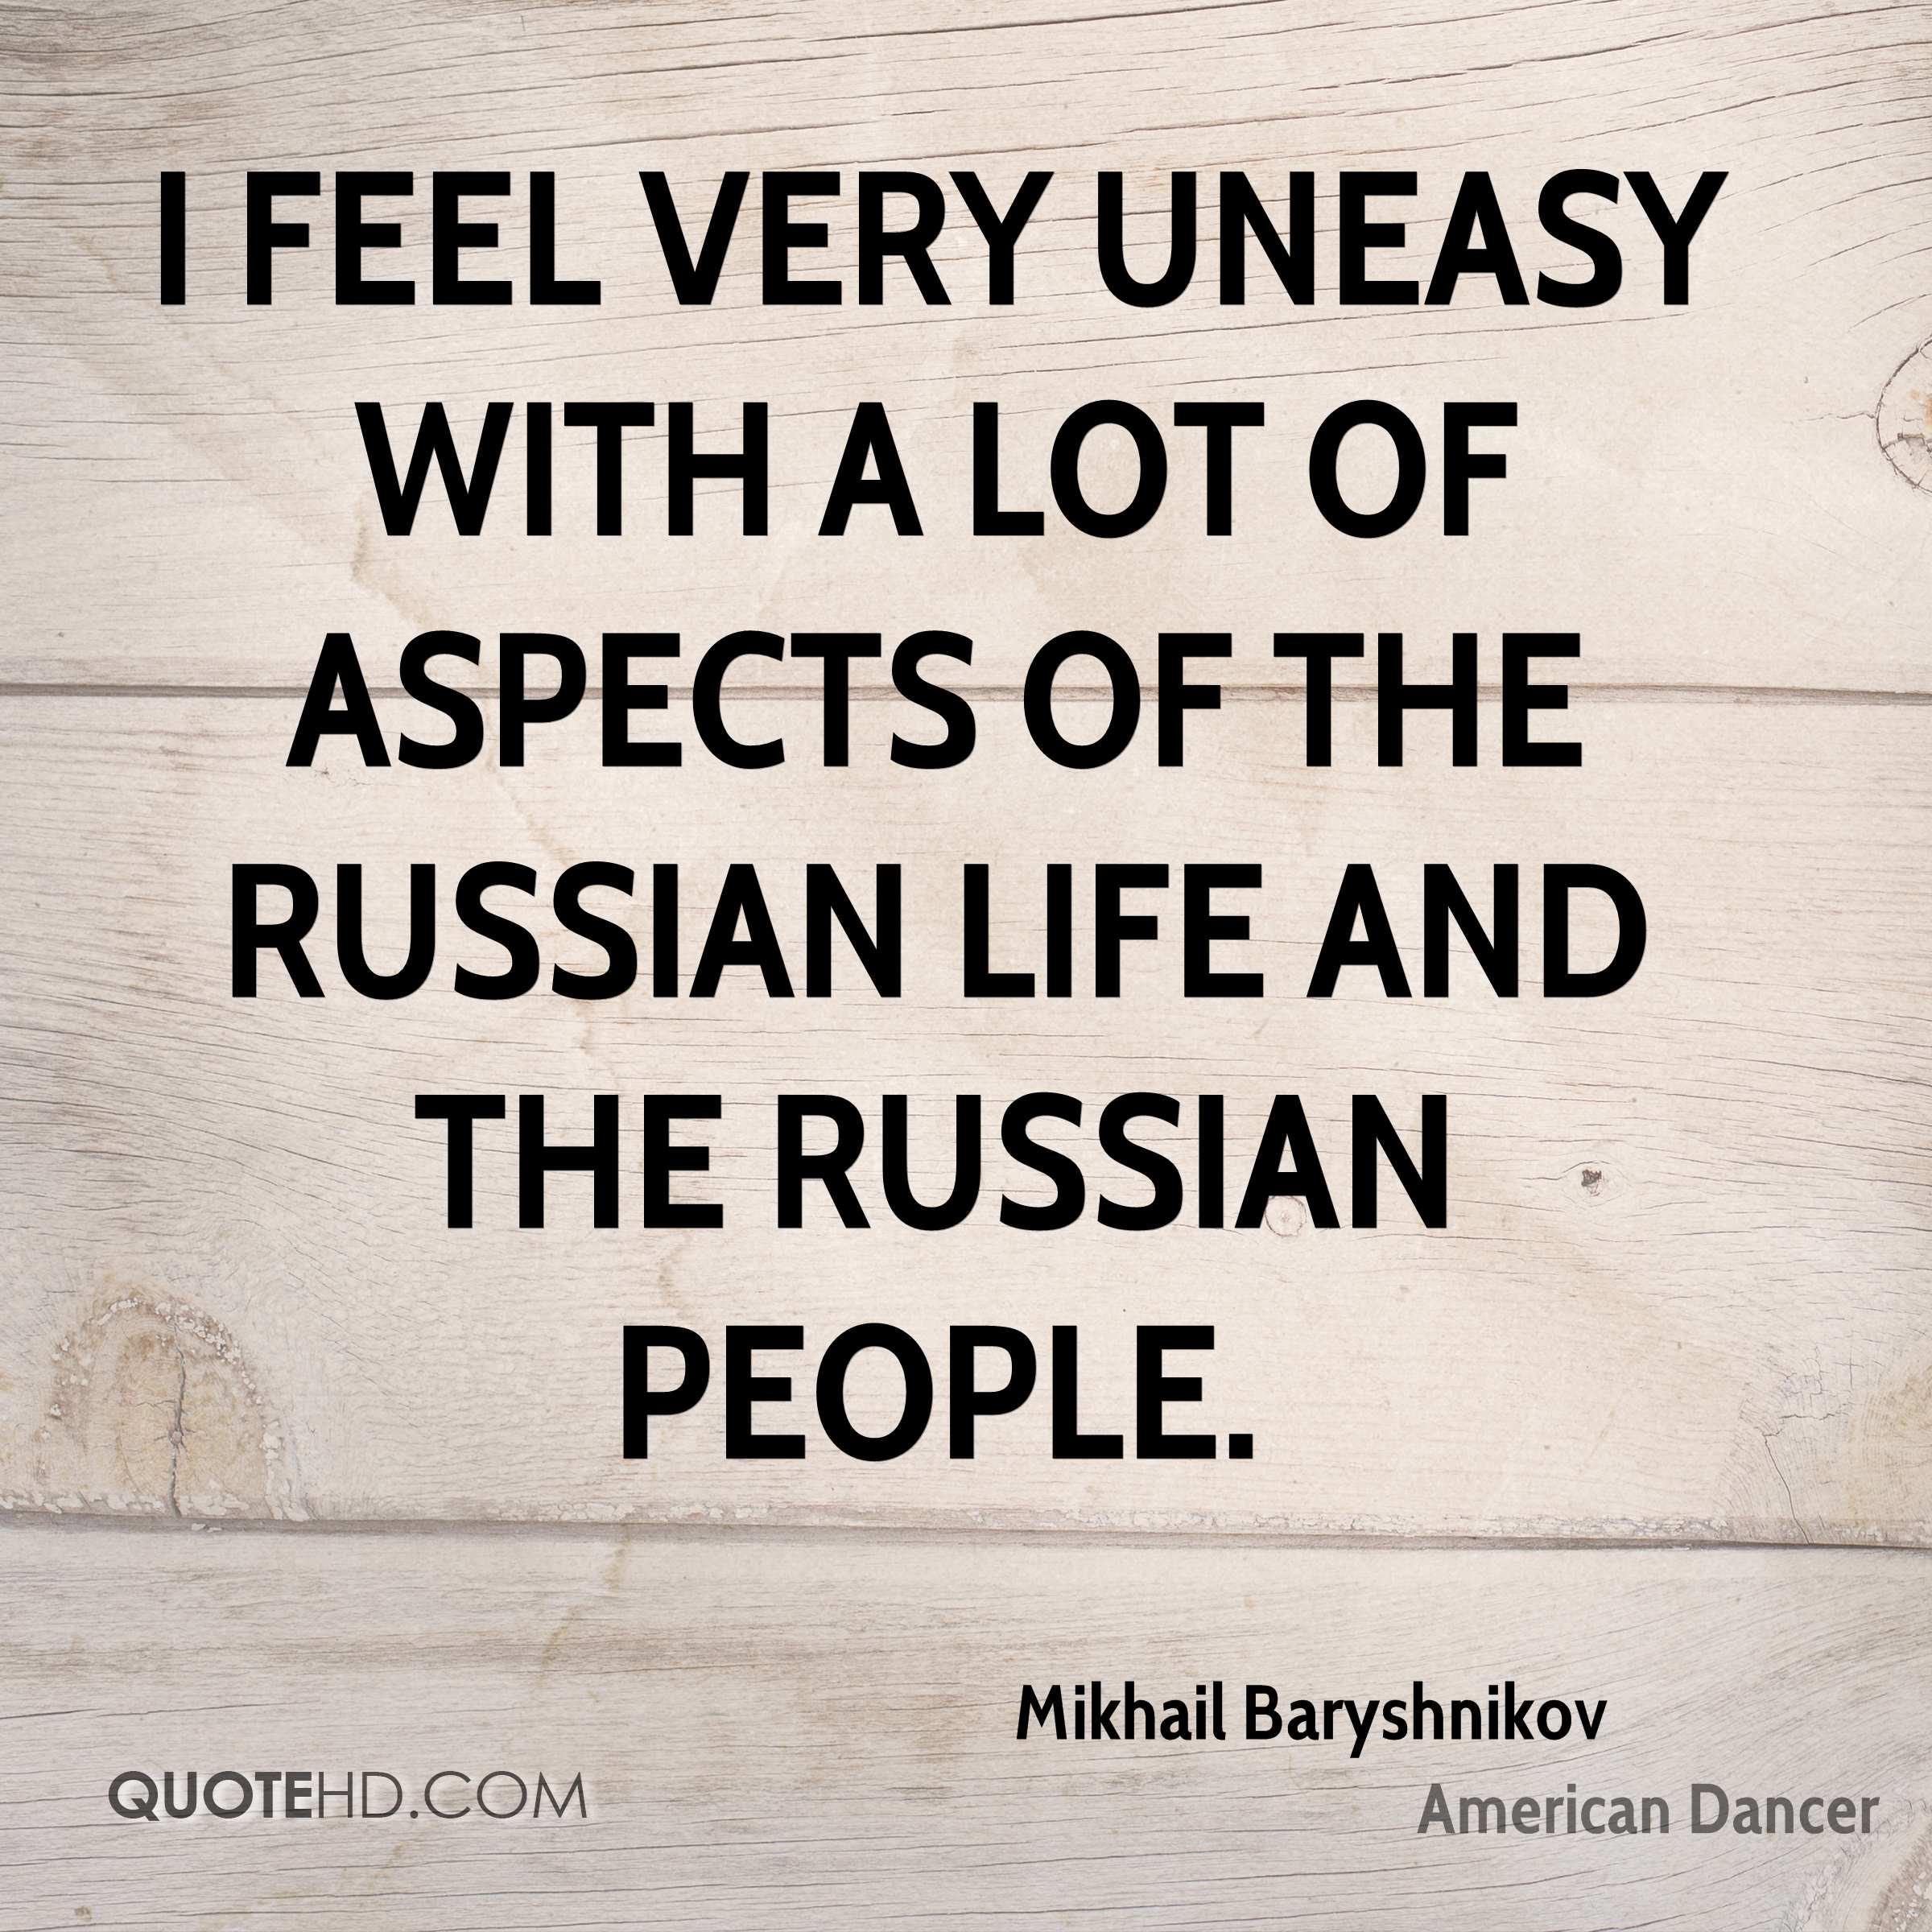 I feel very uneasy with a lot of aspects of the Russian life and the Russian people.